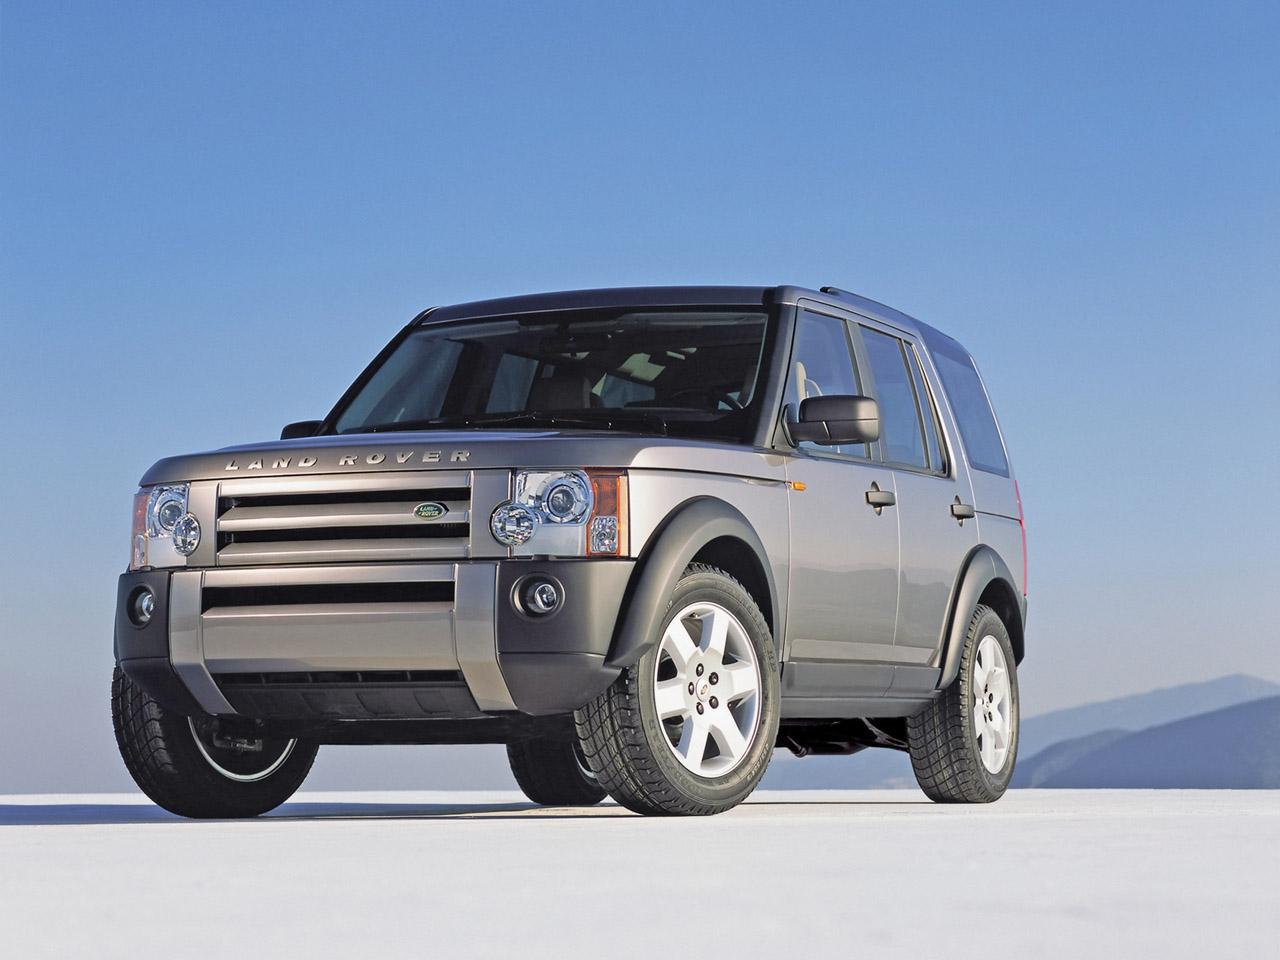 Land Rover Car Pictures 16 Free Car Wallpaper